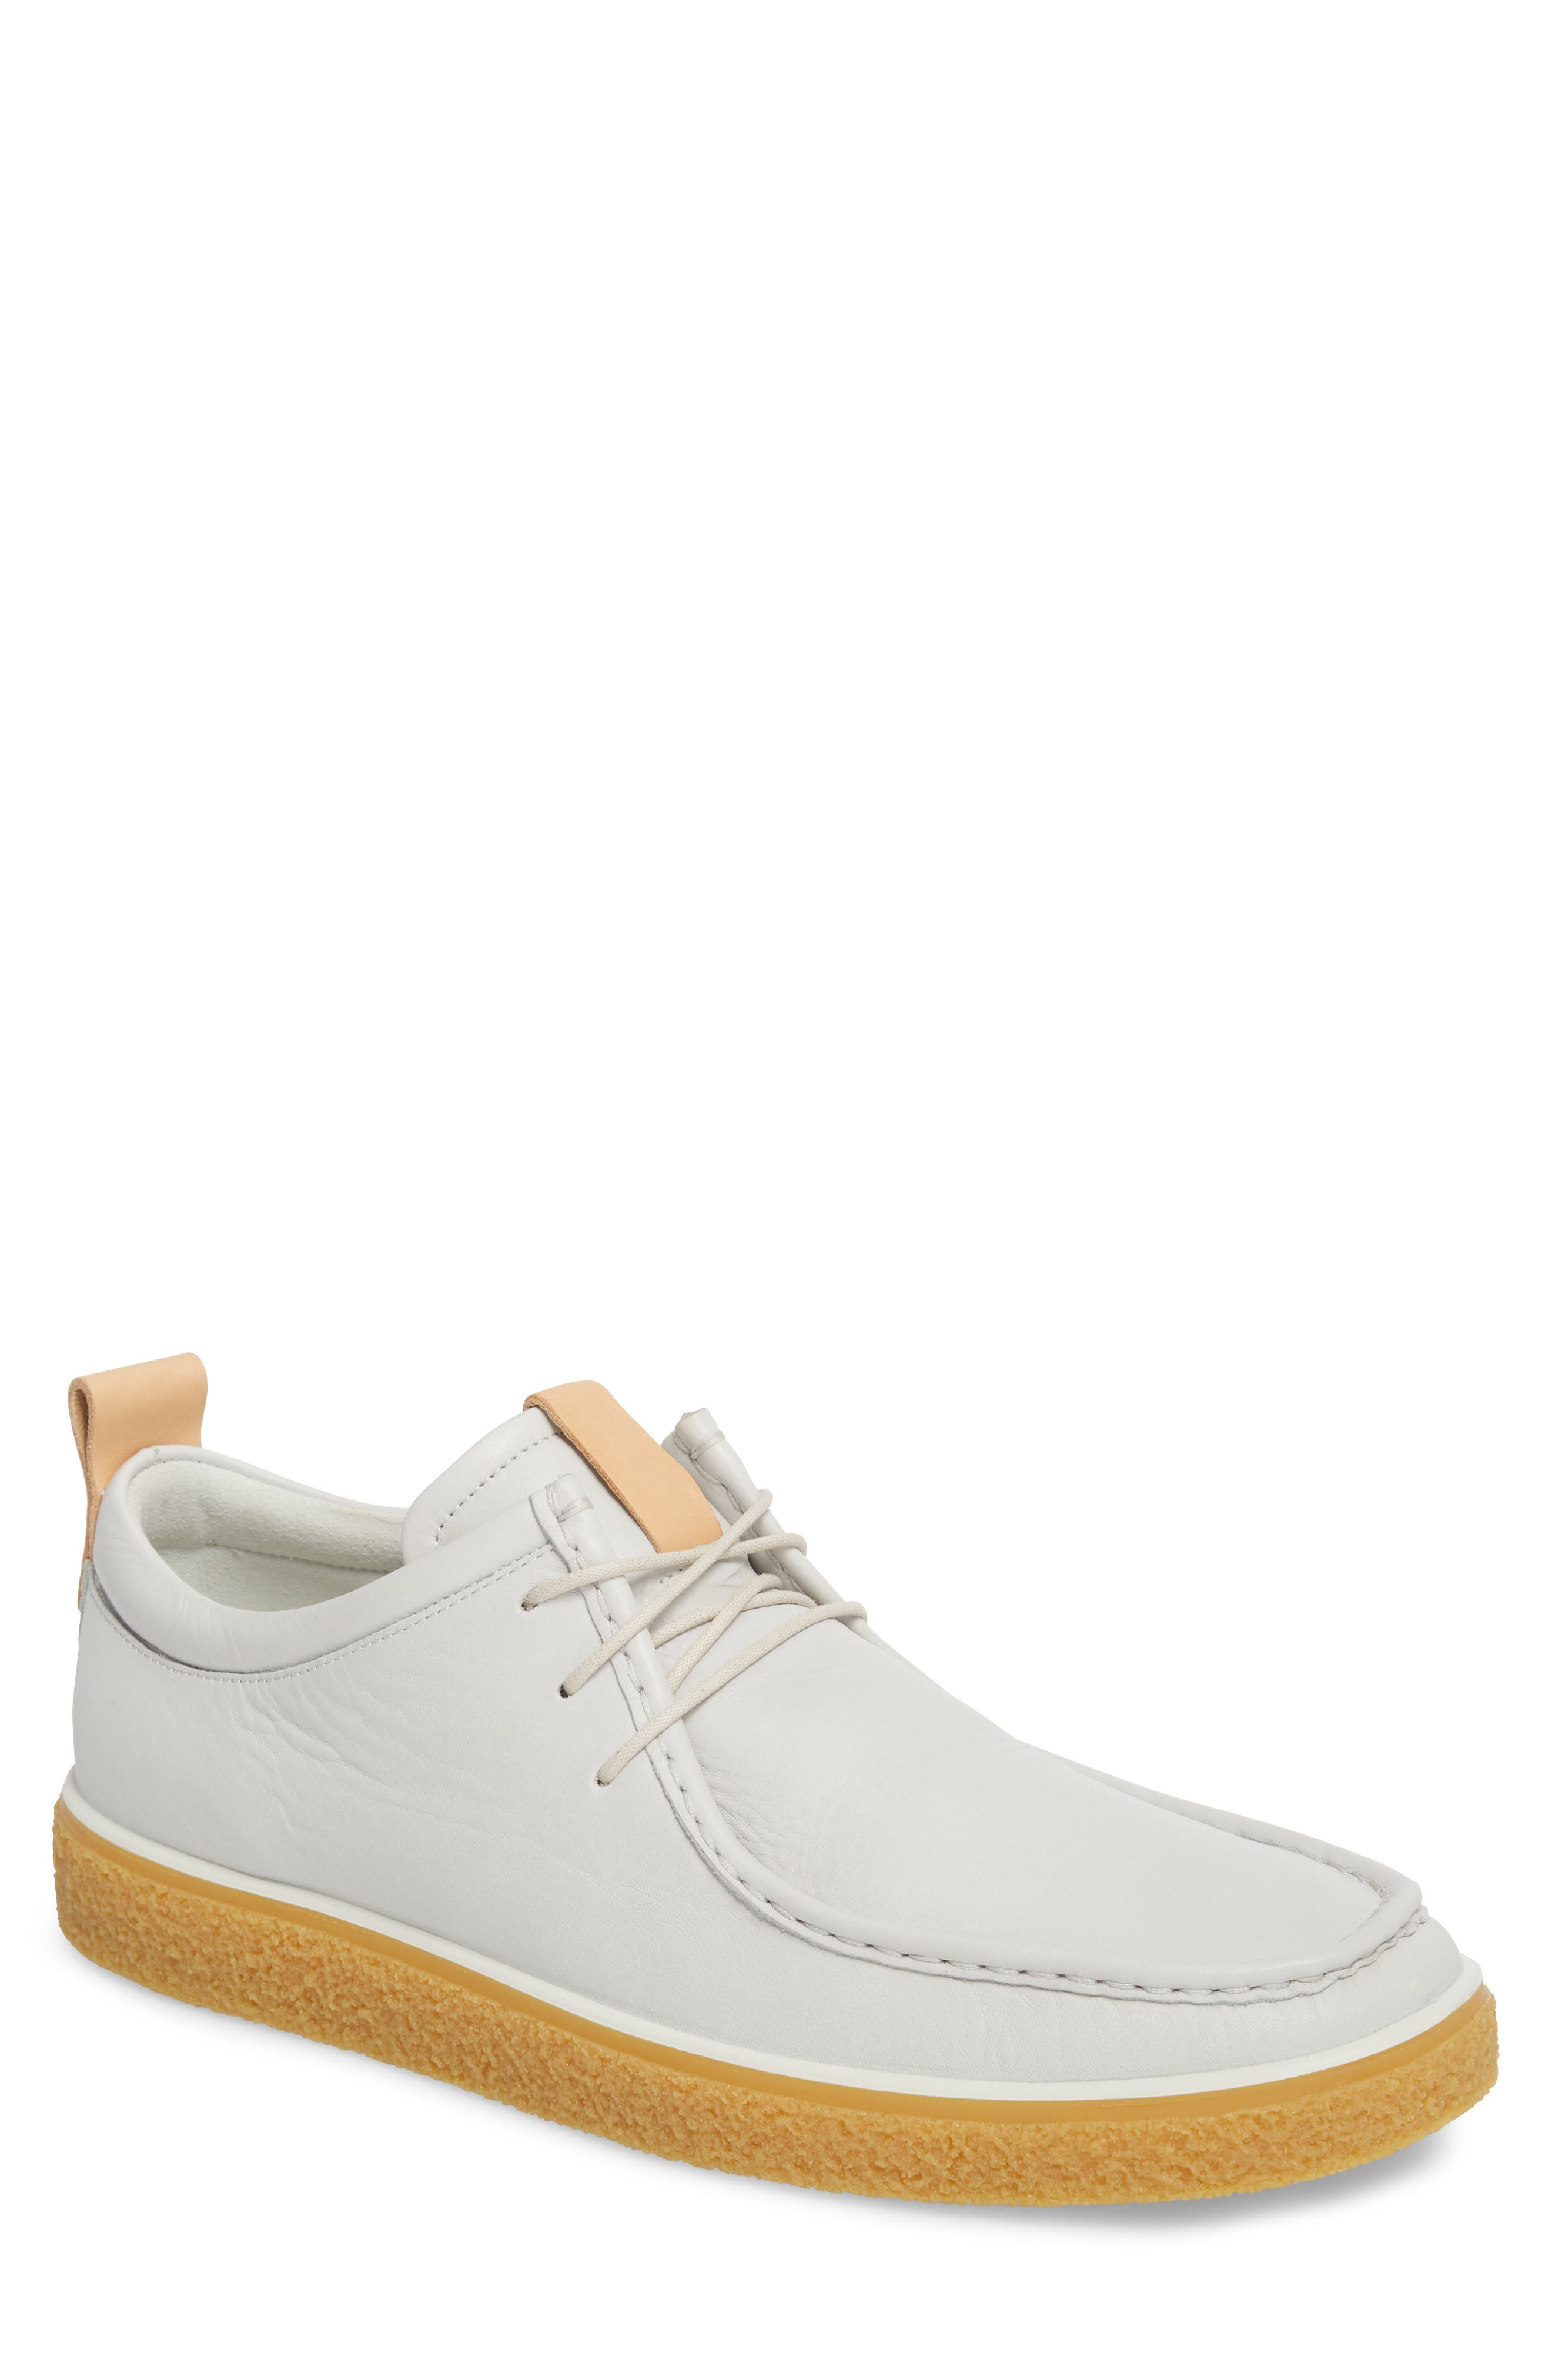 Crepetray Moc Toe Low Chukka Boot,                         Main,                         color, Off White Leather